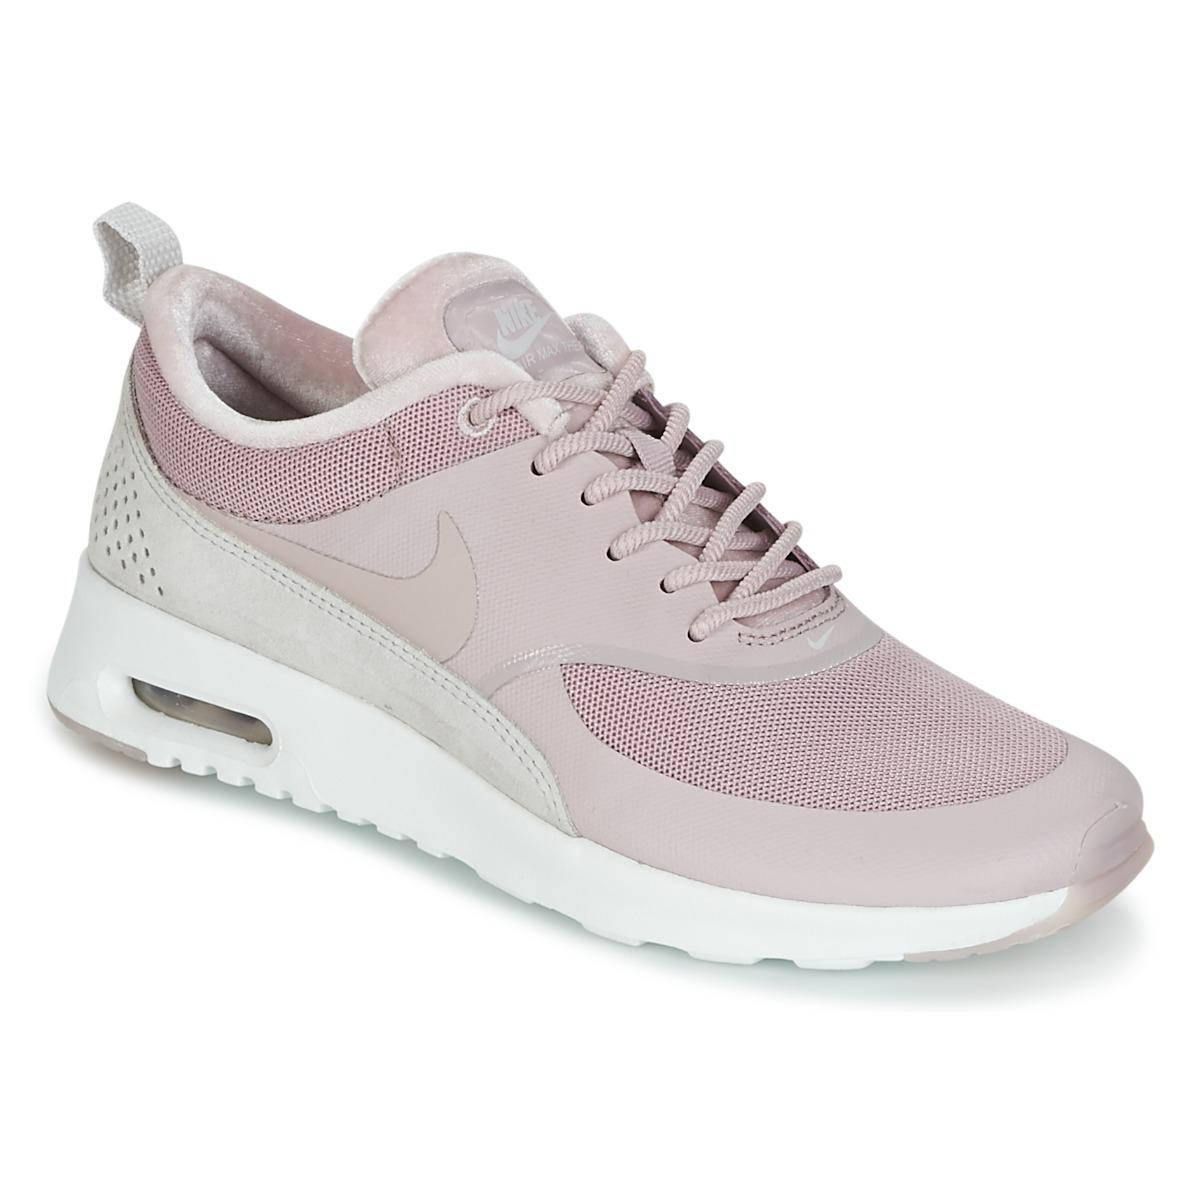 f04f5973ab Nike Air Max Thea Lx W Women's Shoes (trainers) In Pink in Pink - Lyst